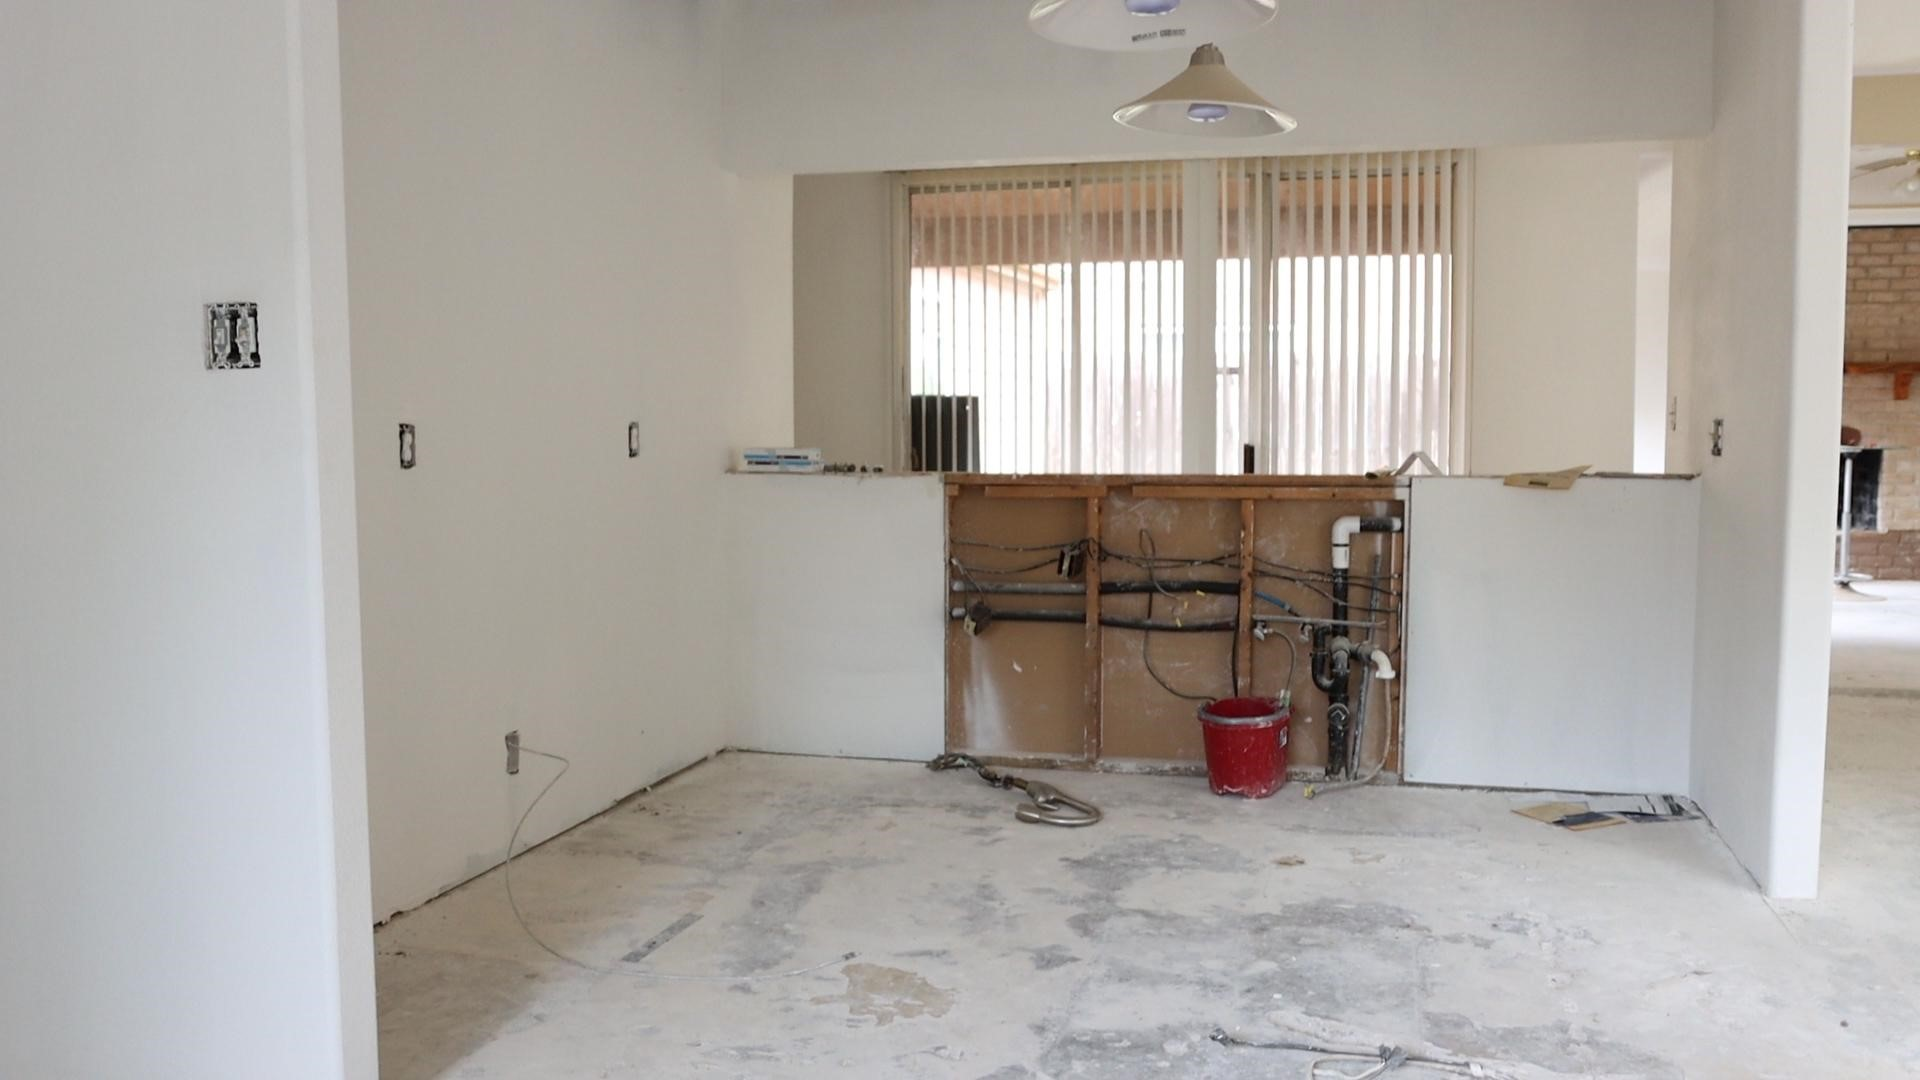 Unfinished 70s-built kitchen undergoes renovation to now include an open concept floor plan.